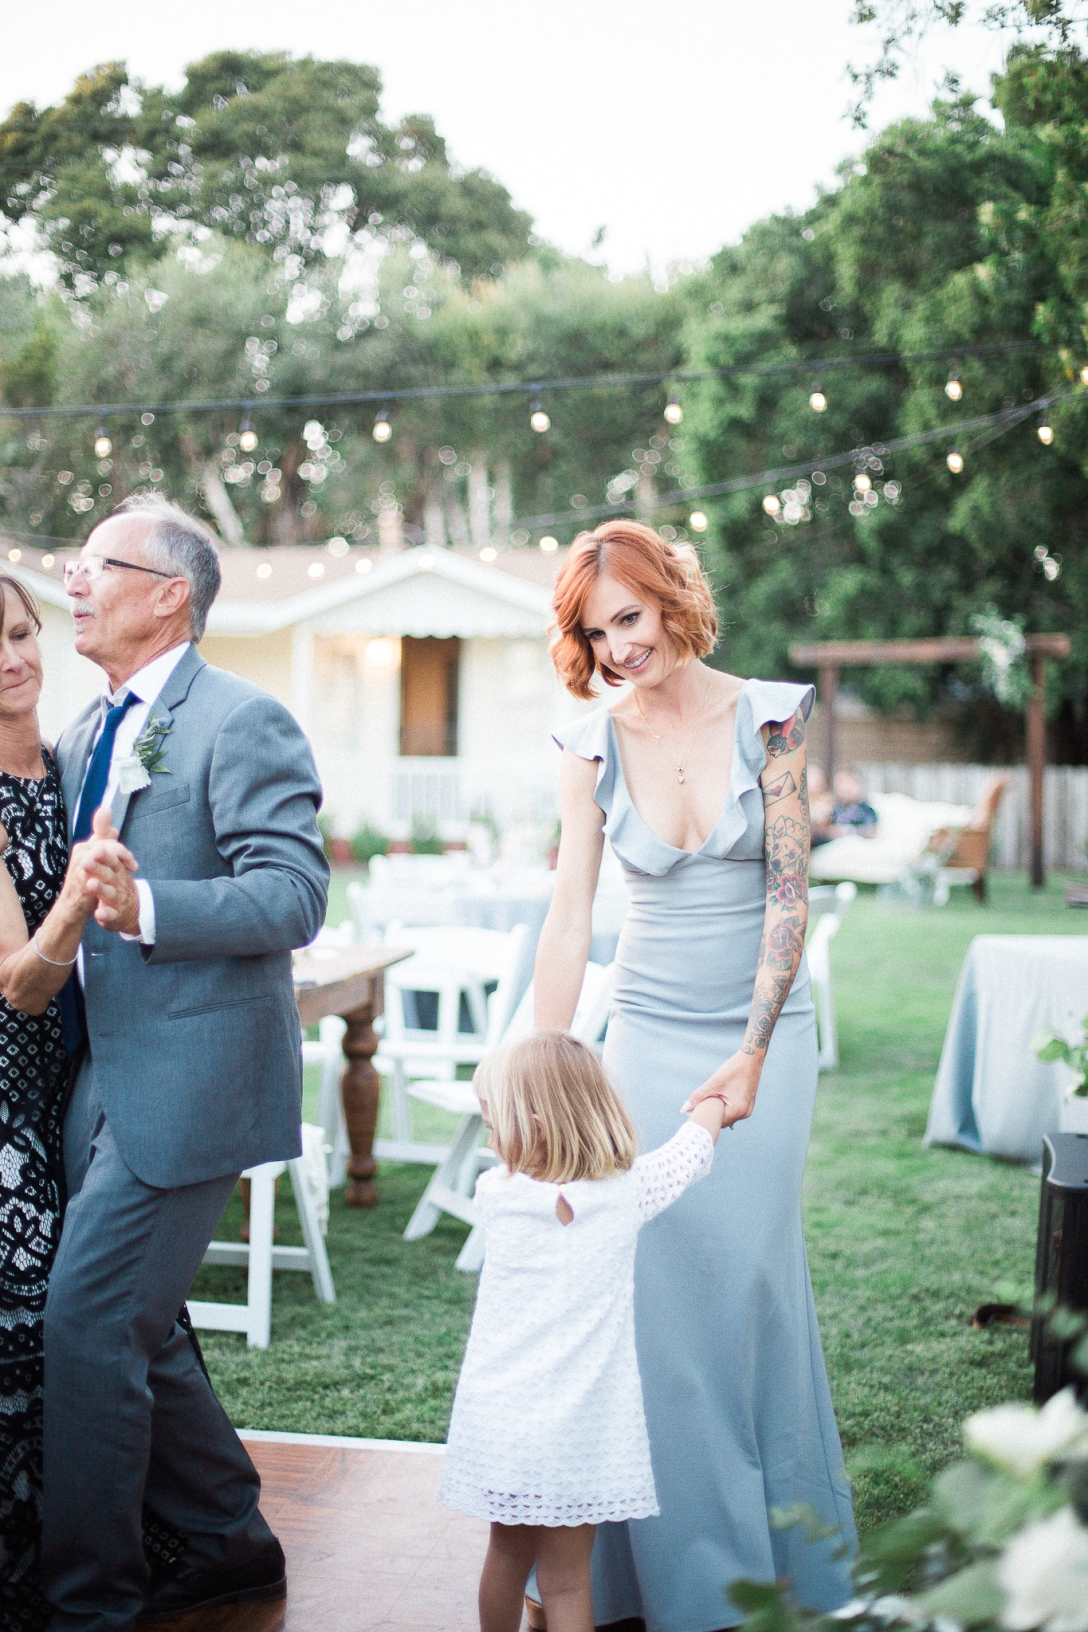 Katy-Steve-Wedding-Tustin-California-88